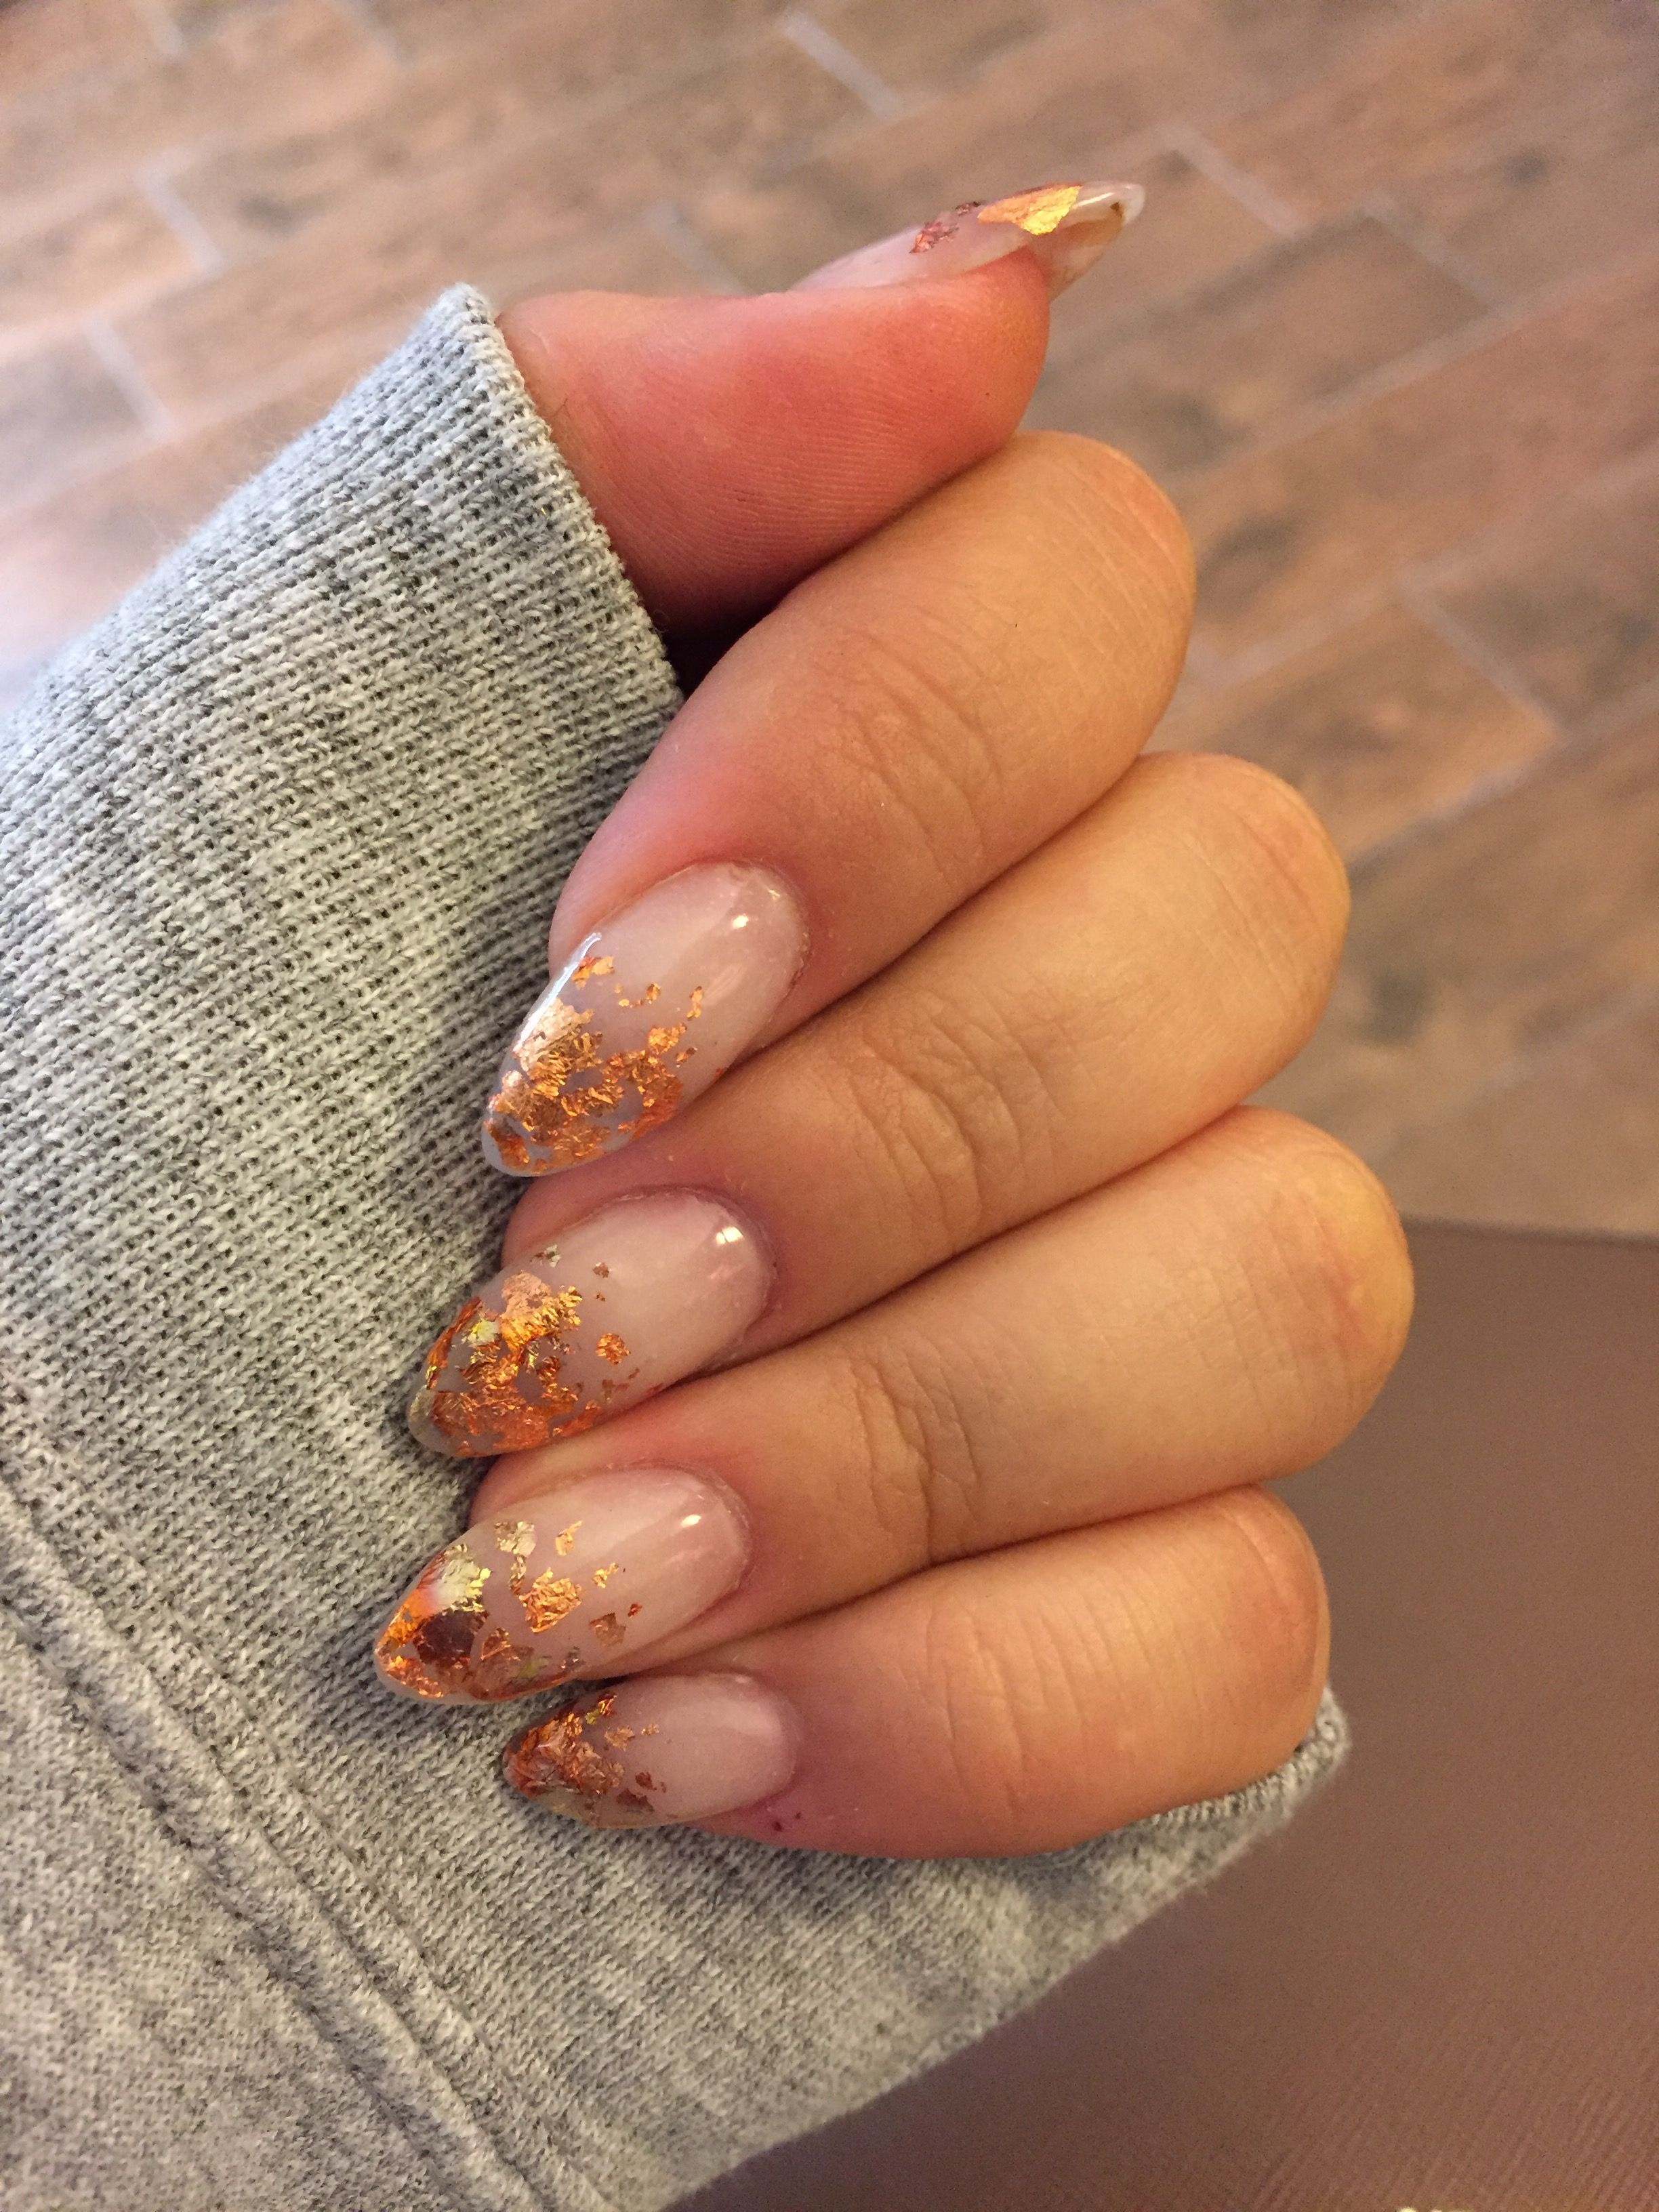 Copper Foil French Tip Acrylic Nail Design Almond Shape Nail Photo Without Flash French Tip Acrylic Nails Almond Shape Nails Almond Acrylic Nails